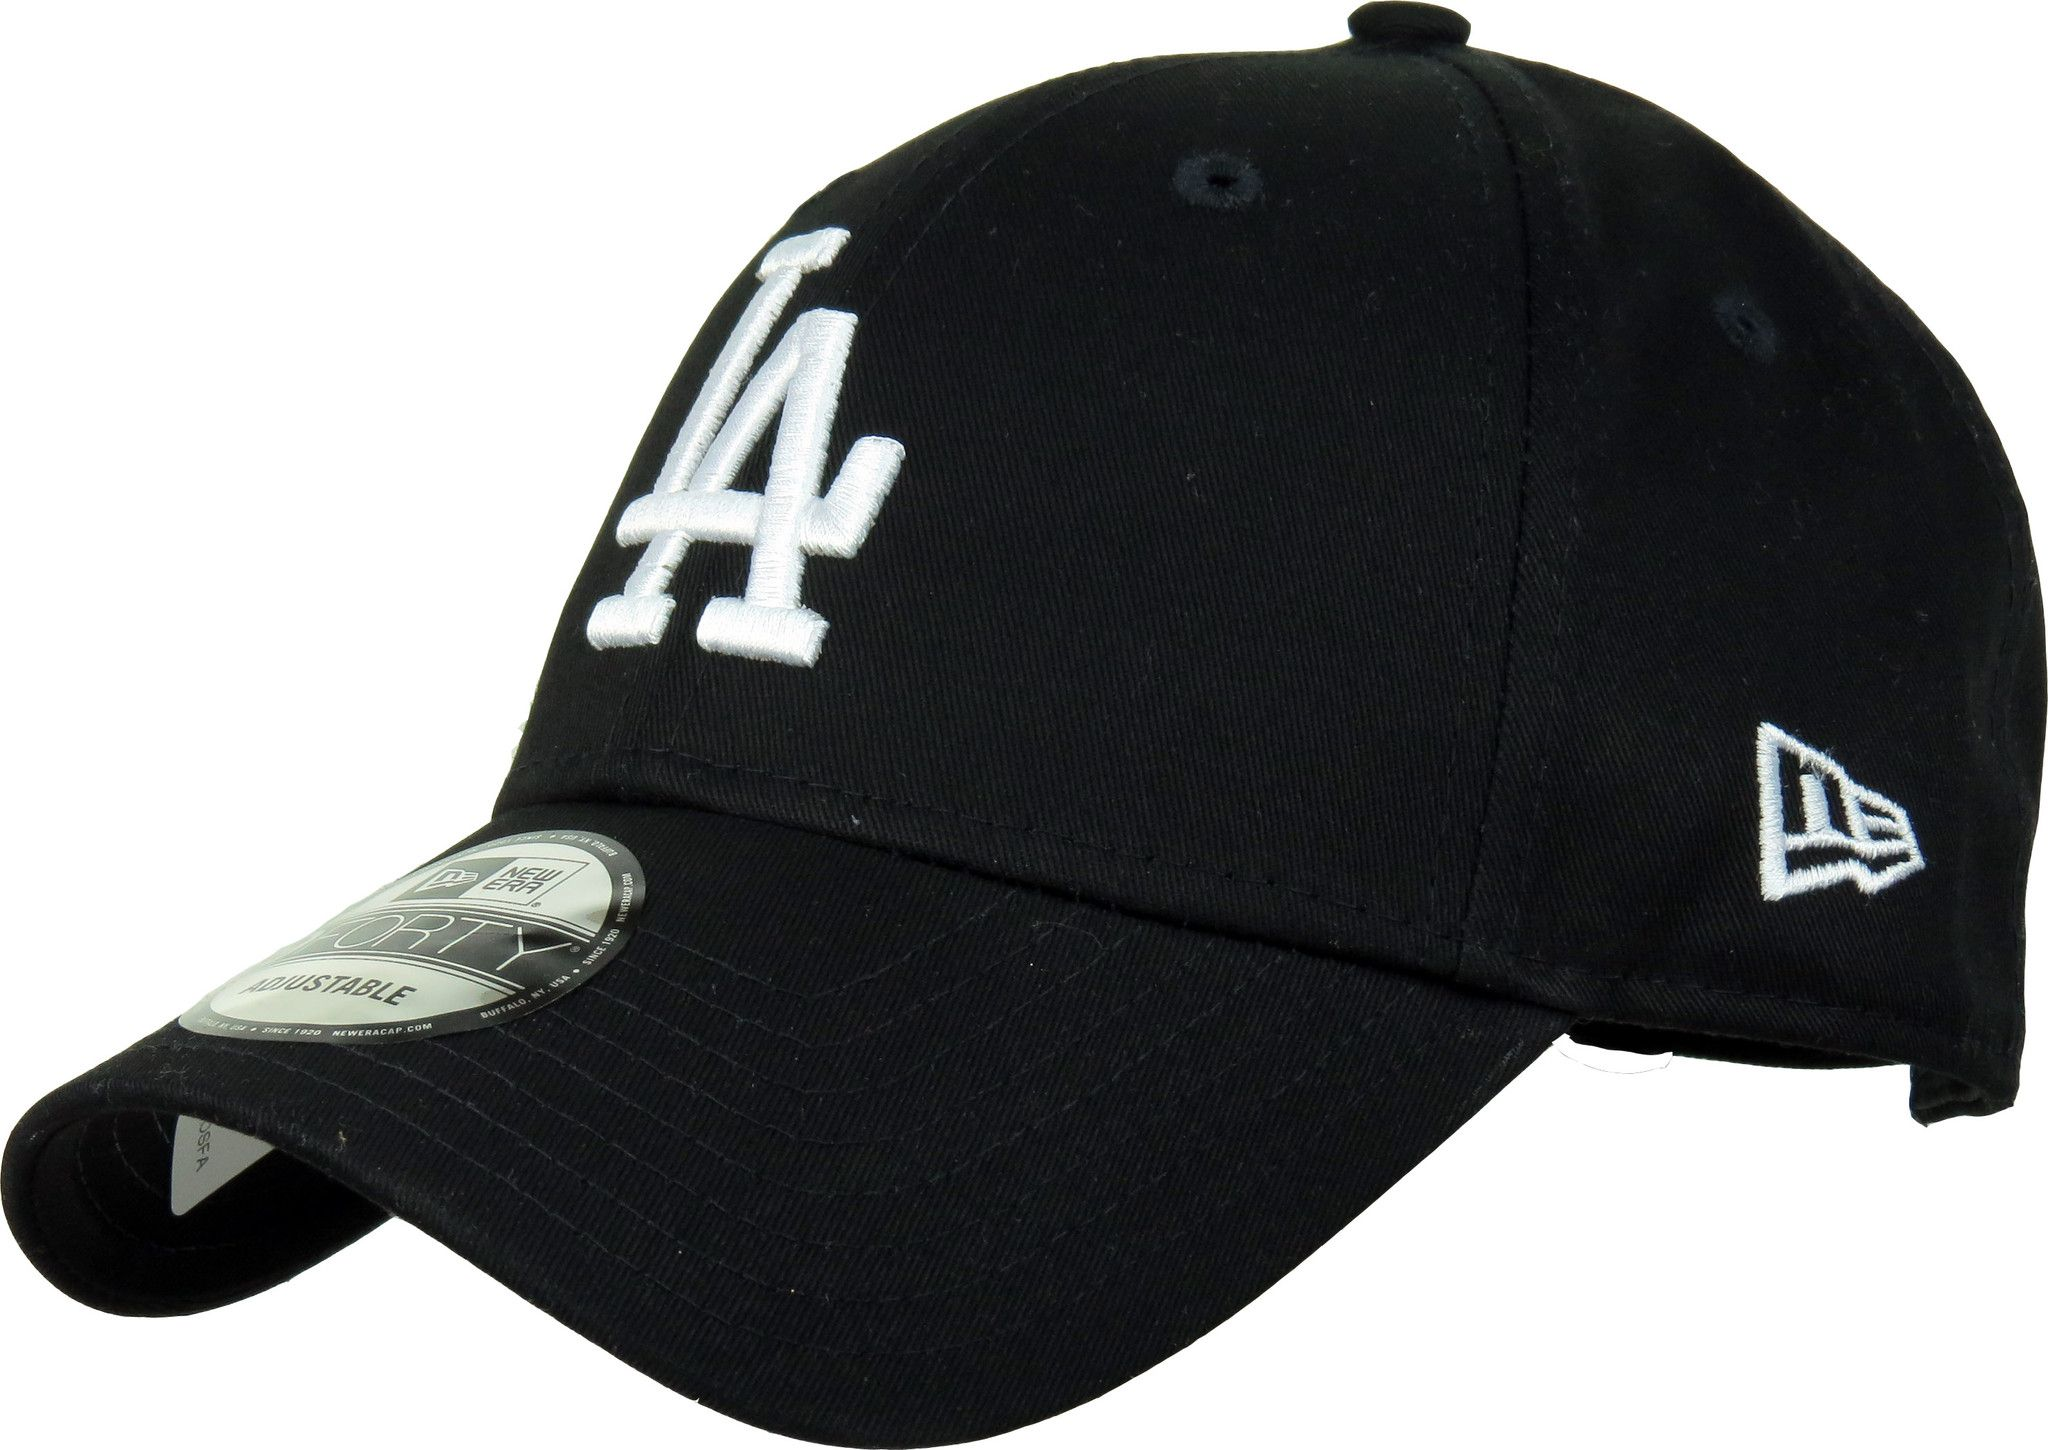 LA Dodgers New Era 940 League Essential Black Baseball Cap  21c7b67a87b